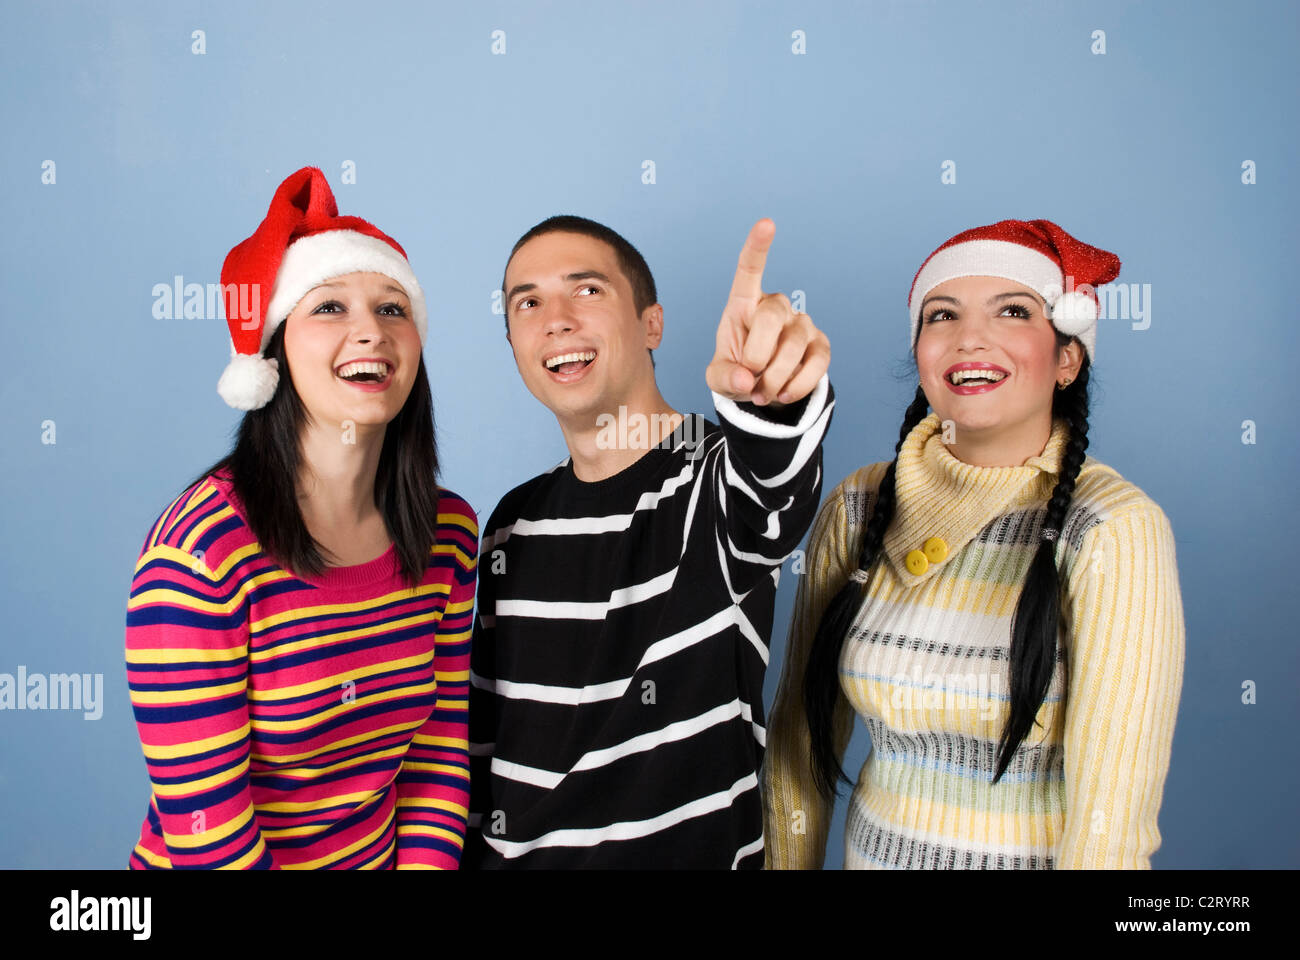 5ccf95993 Happy young Christmas friends people with Santa hats laughing Stock ...